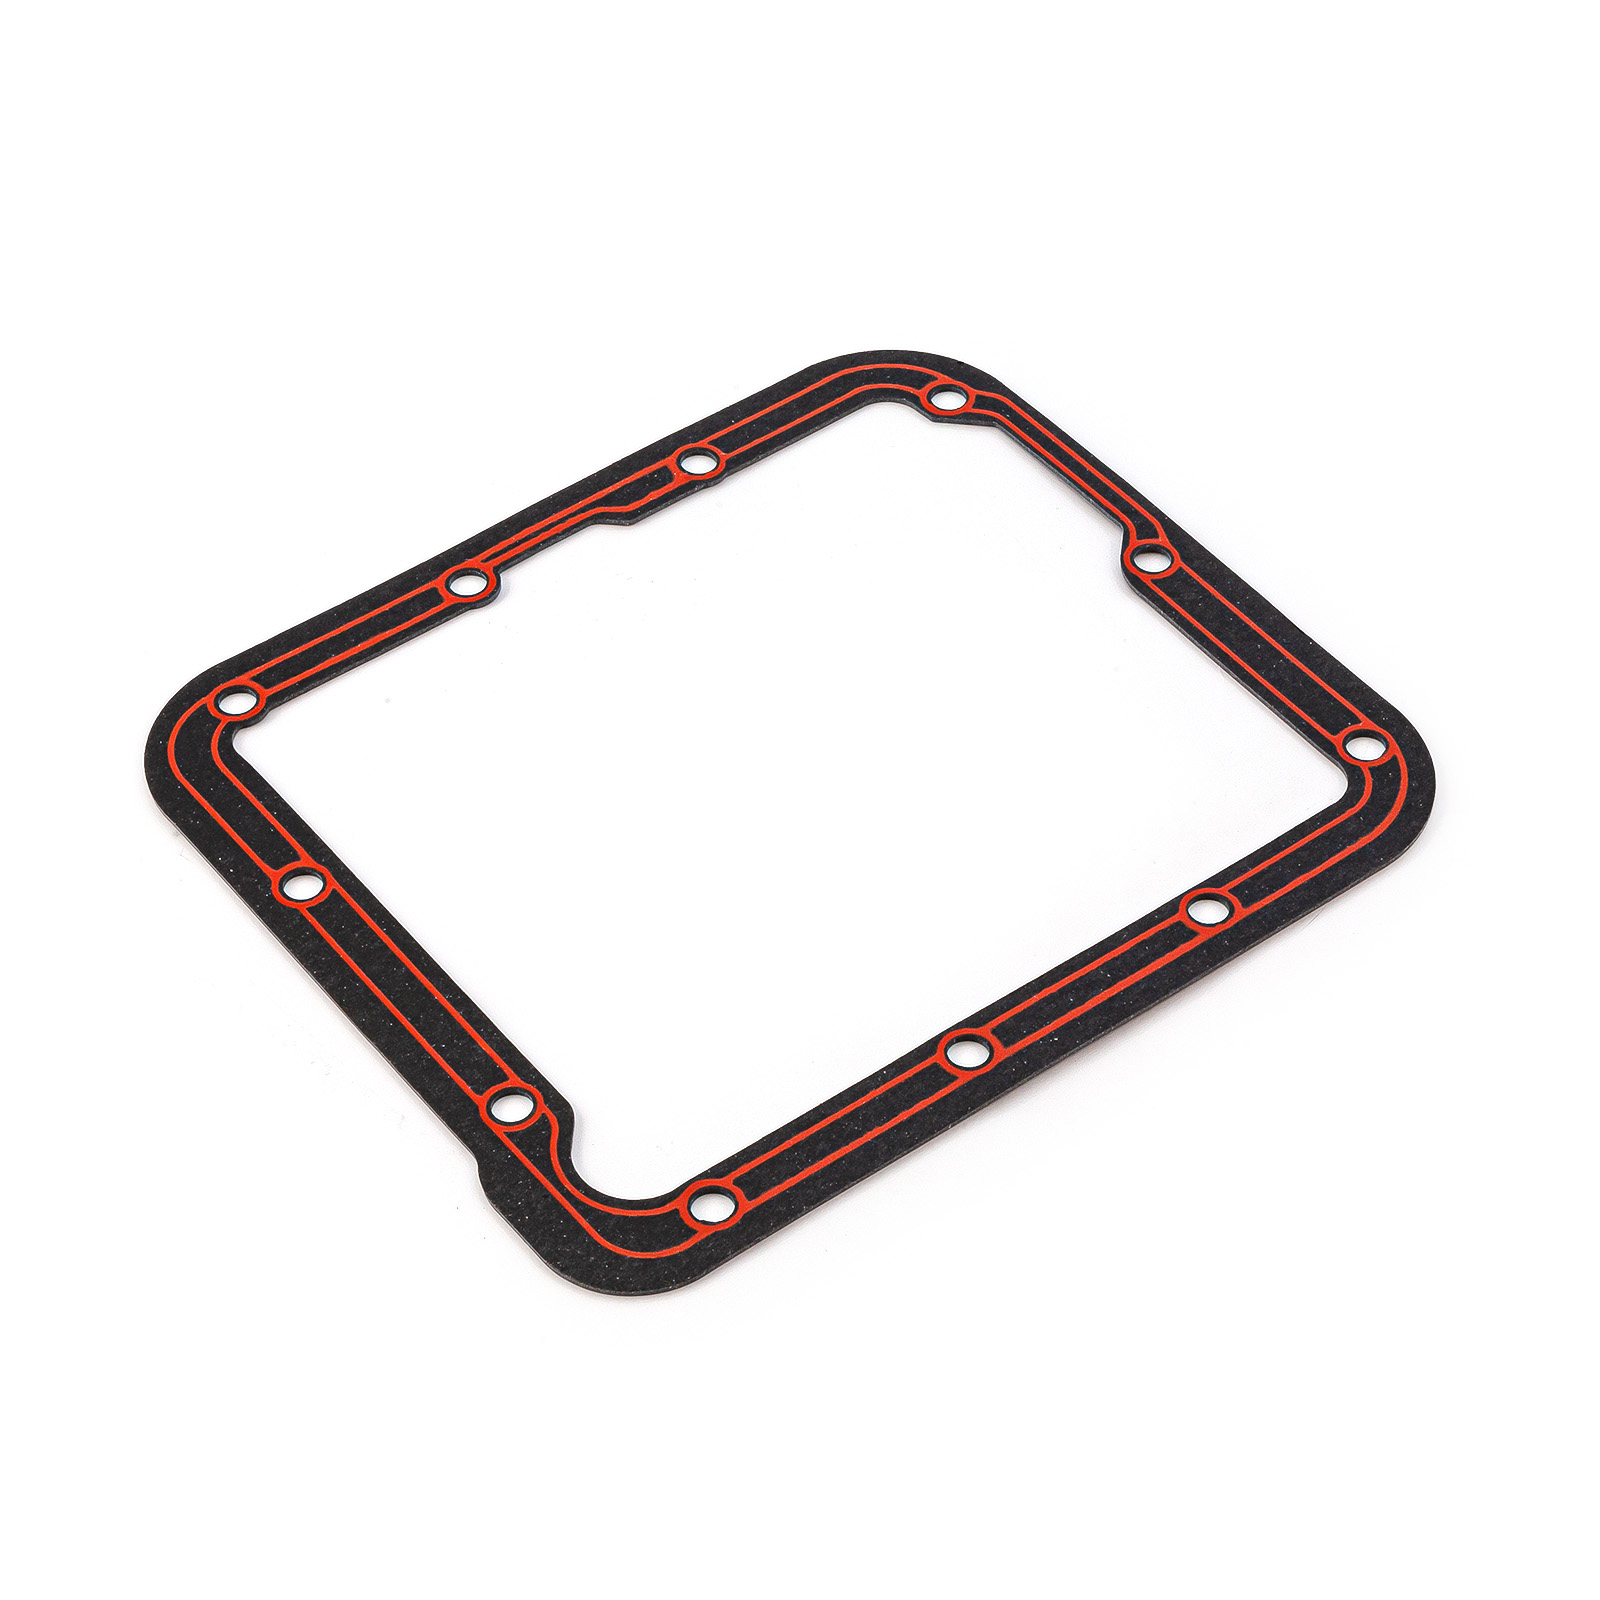 Ford C4 Transmission Pan Gasket Steel with Rubber